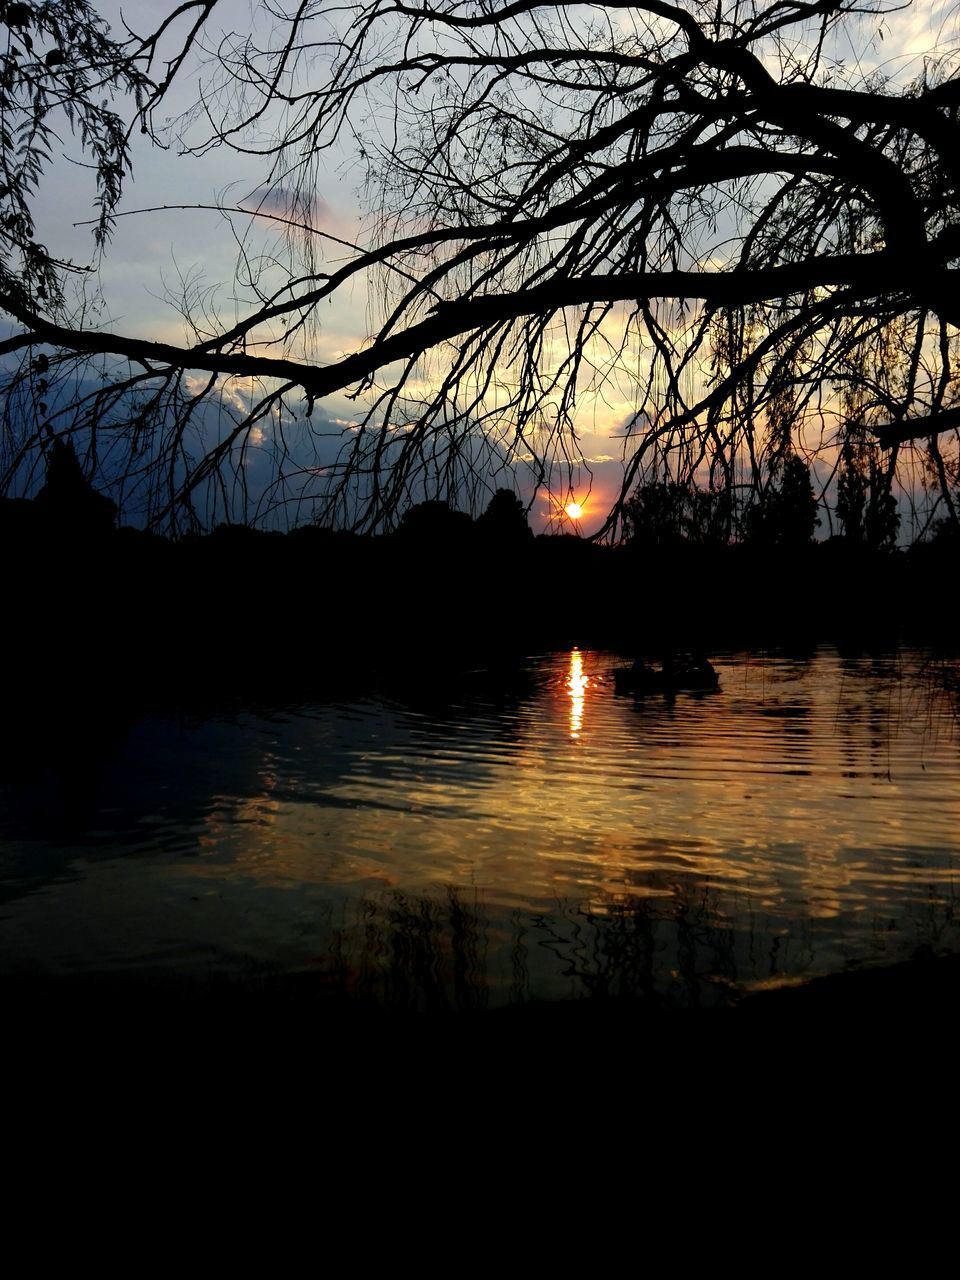 sunset, silhouette, reflection, tree, nature, beauty in nature, scenics, tranquil scene, water, tranquility, sun, lake, sky, outdoors, no people, branch, bare tree, day